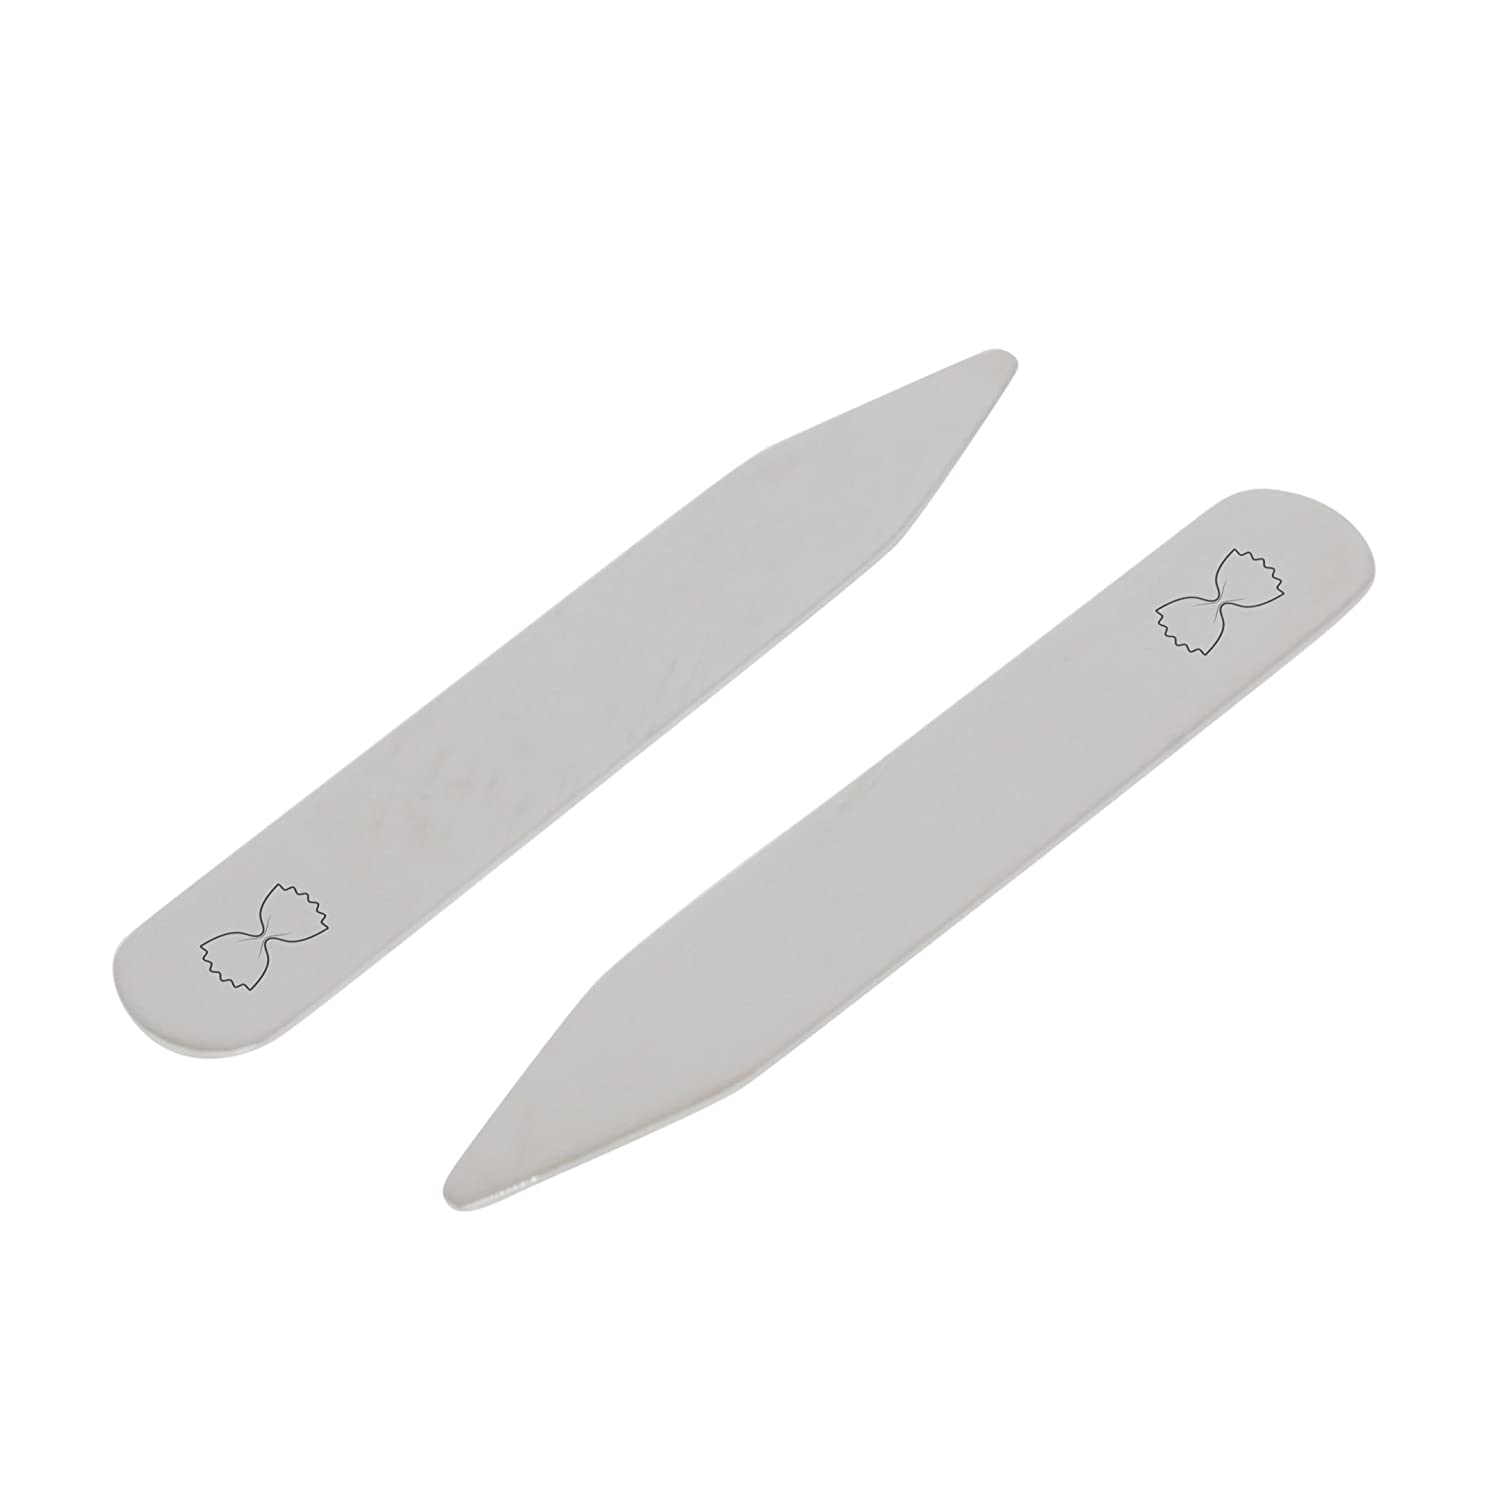 2.5 Inch Metal Collar Stiffeners MODERN GOODS SHOP Stainless Steel Collar Stays With Laser Engraved Macaroni Design Made In USA